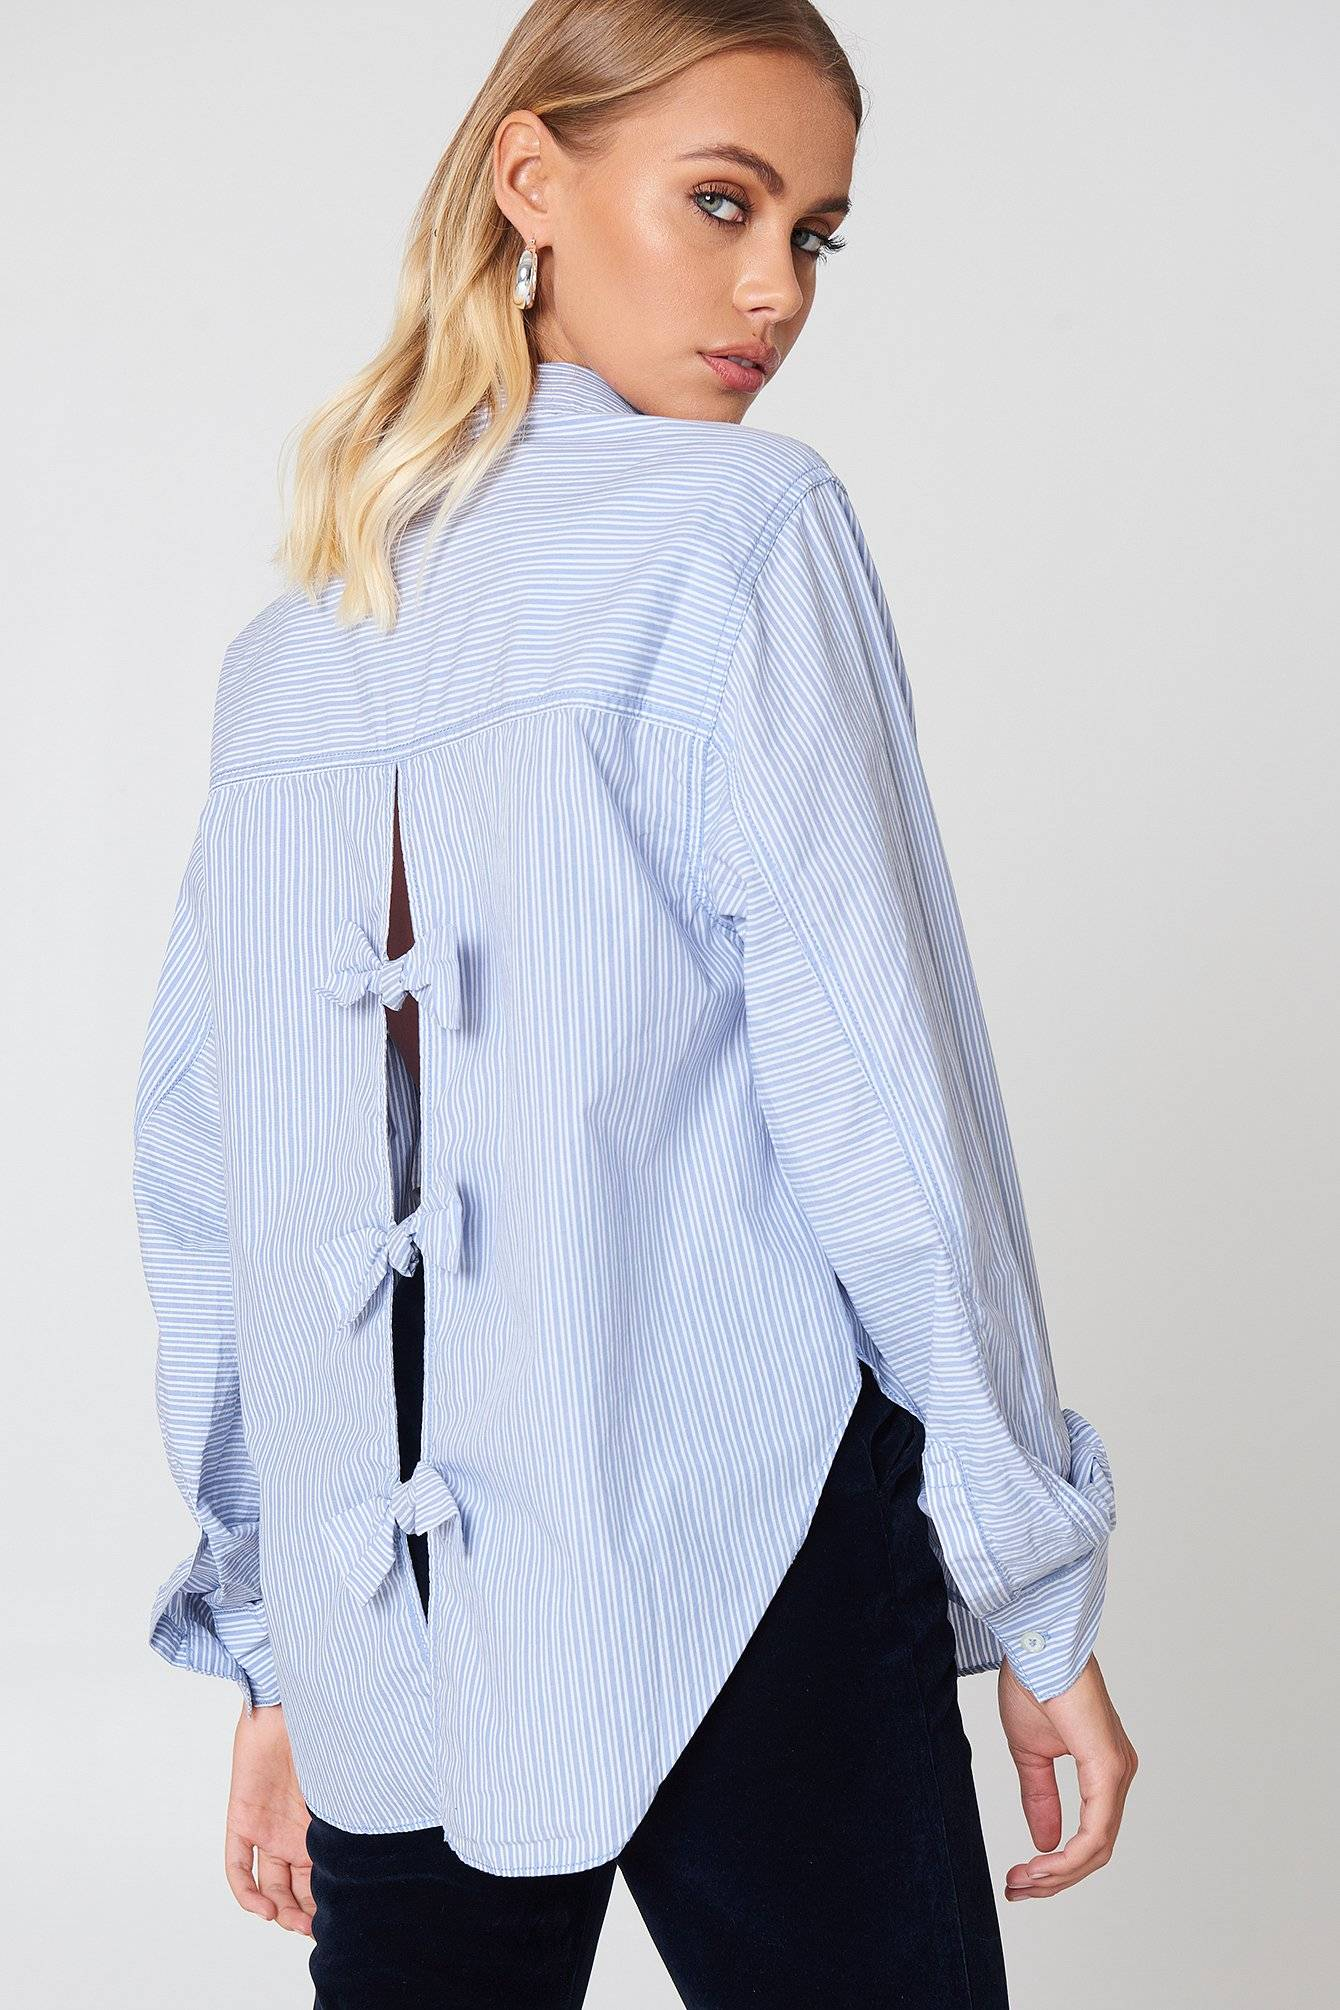 Free People Tie It In A Bow Shirt - Blue,Multicolor